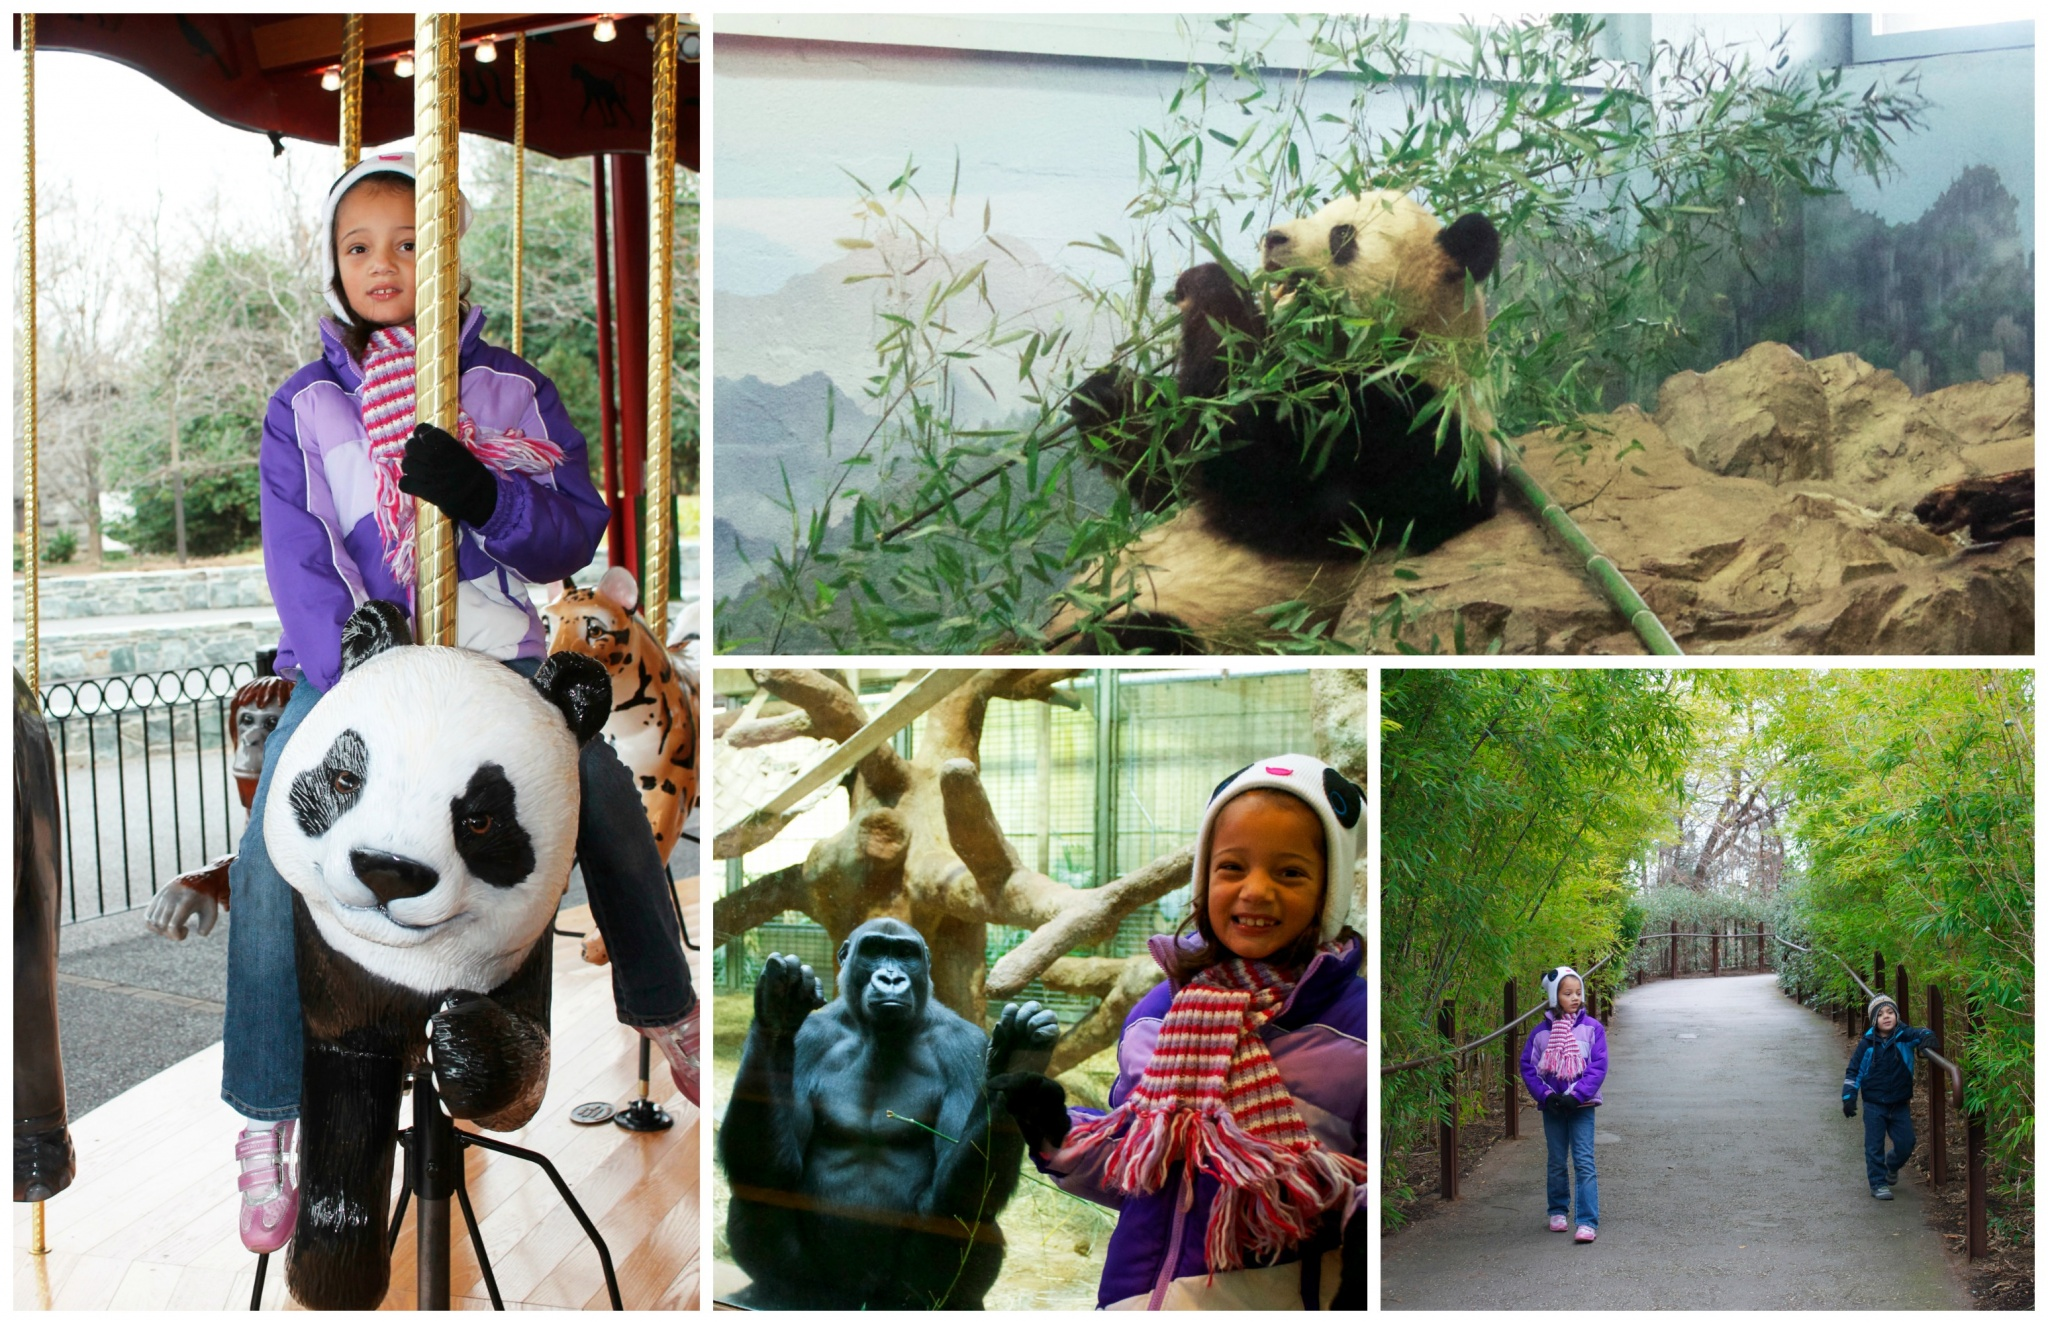 Visiting the Washington D.C. National zoo with kids to see the pandas.